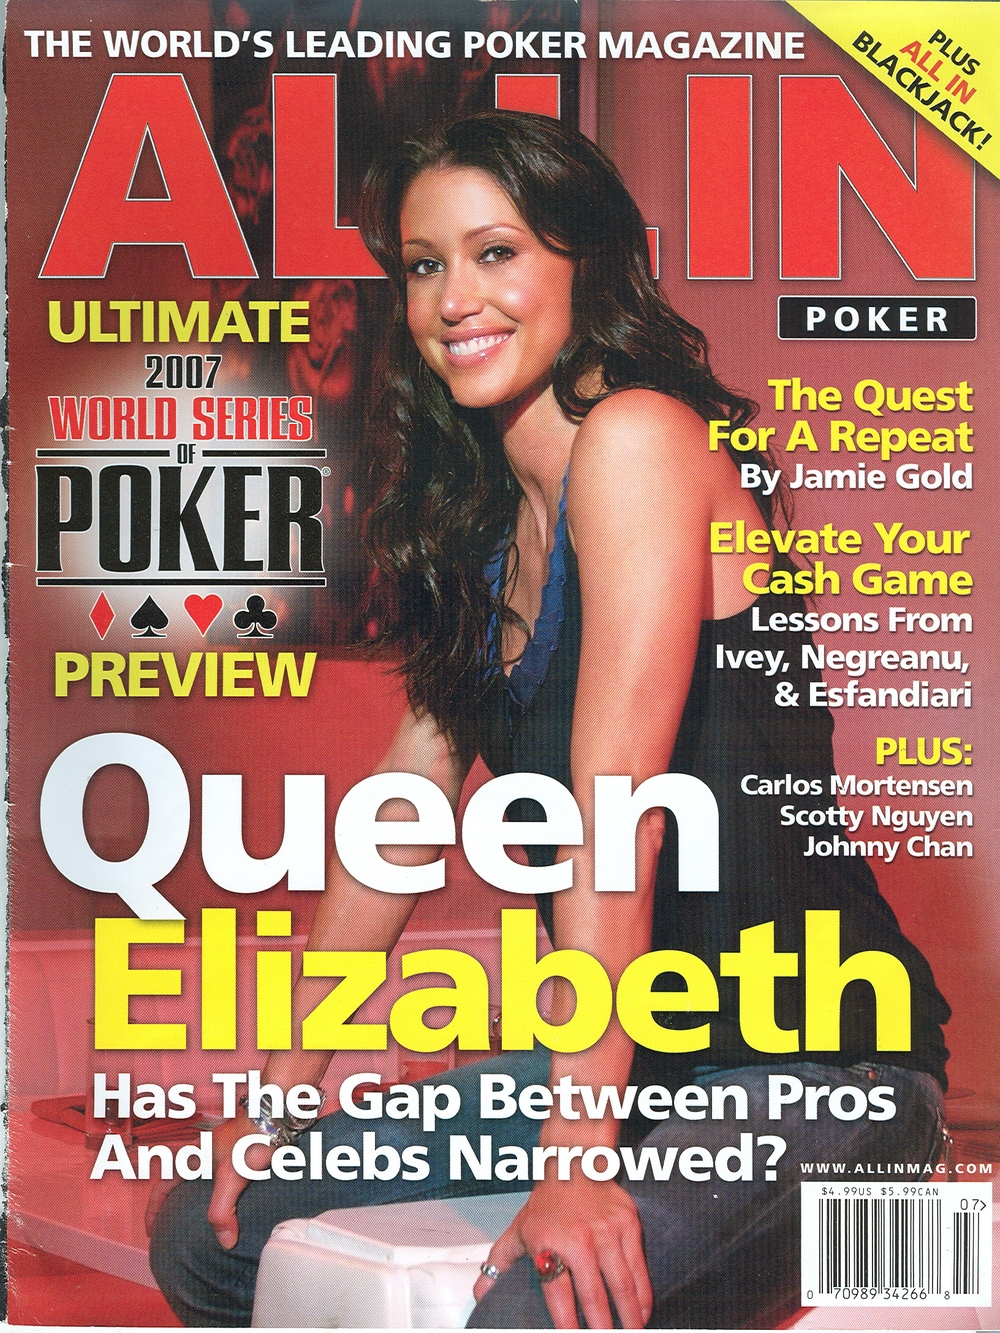 SE_All In Magazine_July 2007_1.jpg